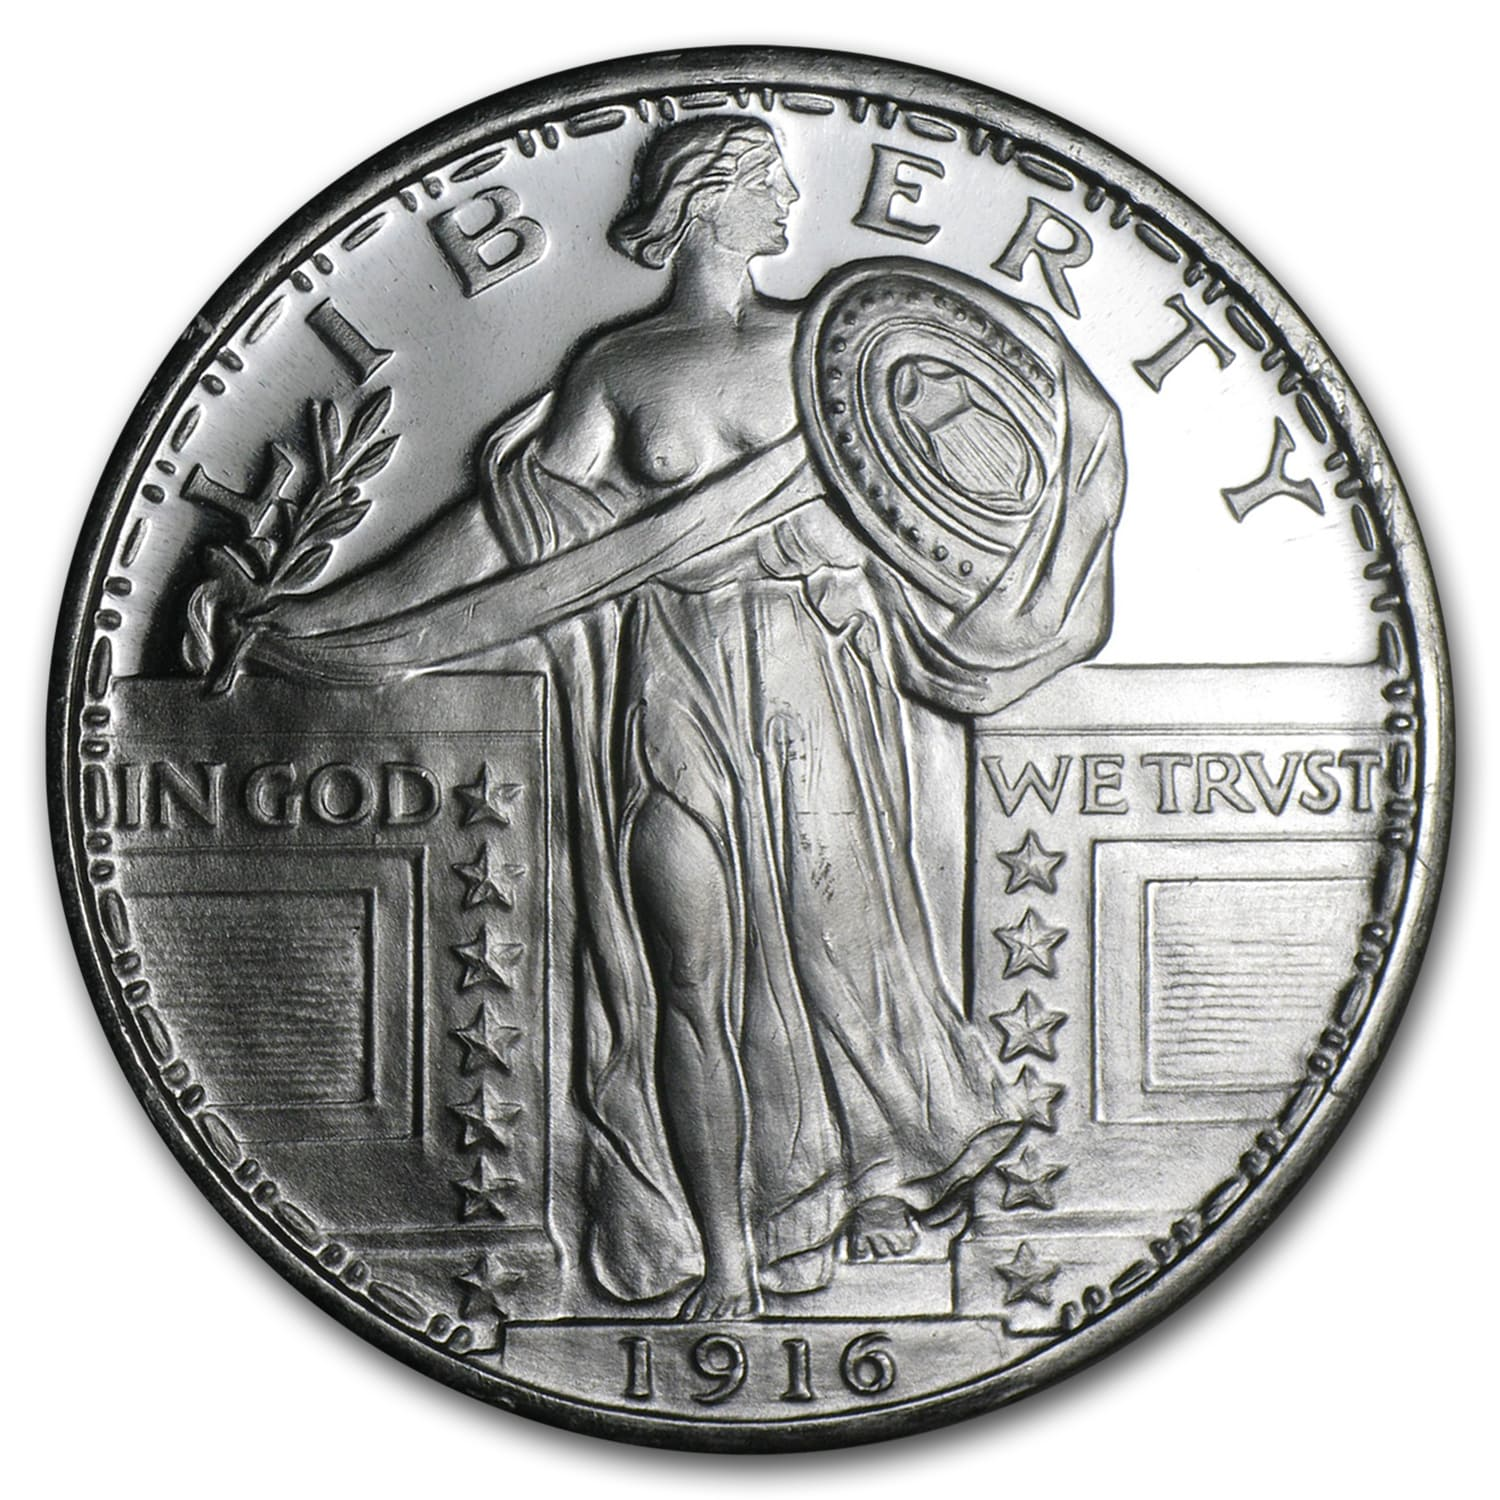 1 oz Silver Round - Standing Liberty (Pre-Sale 8/12/15)